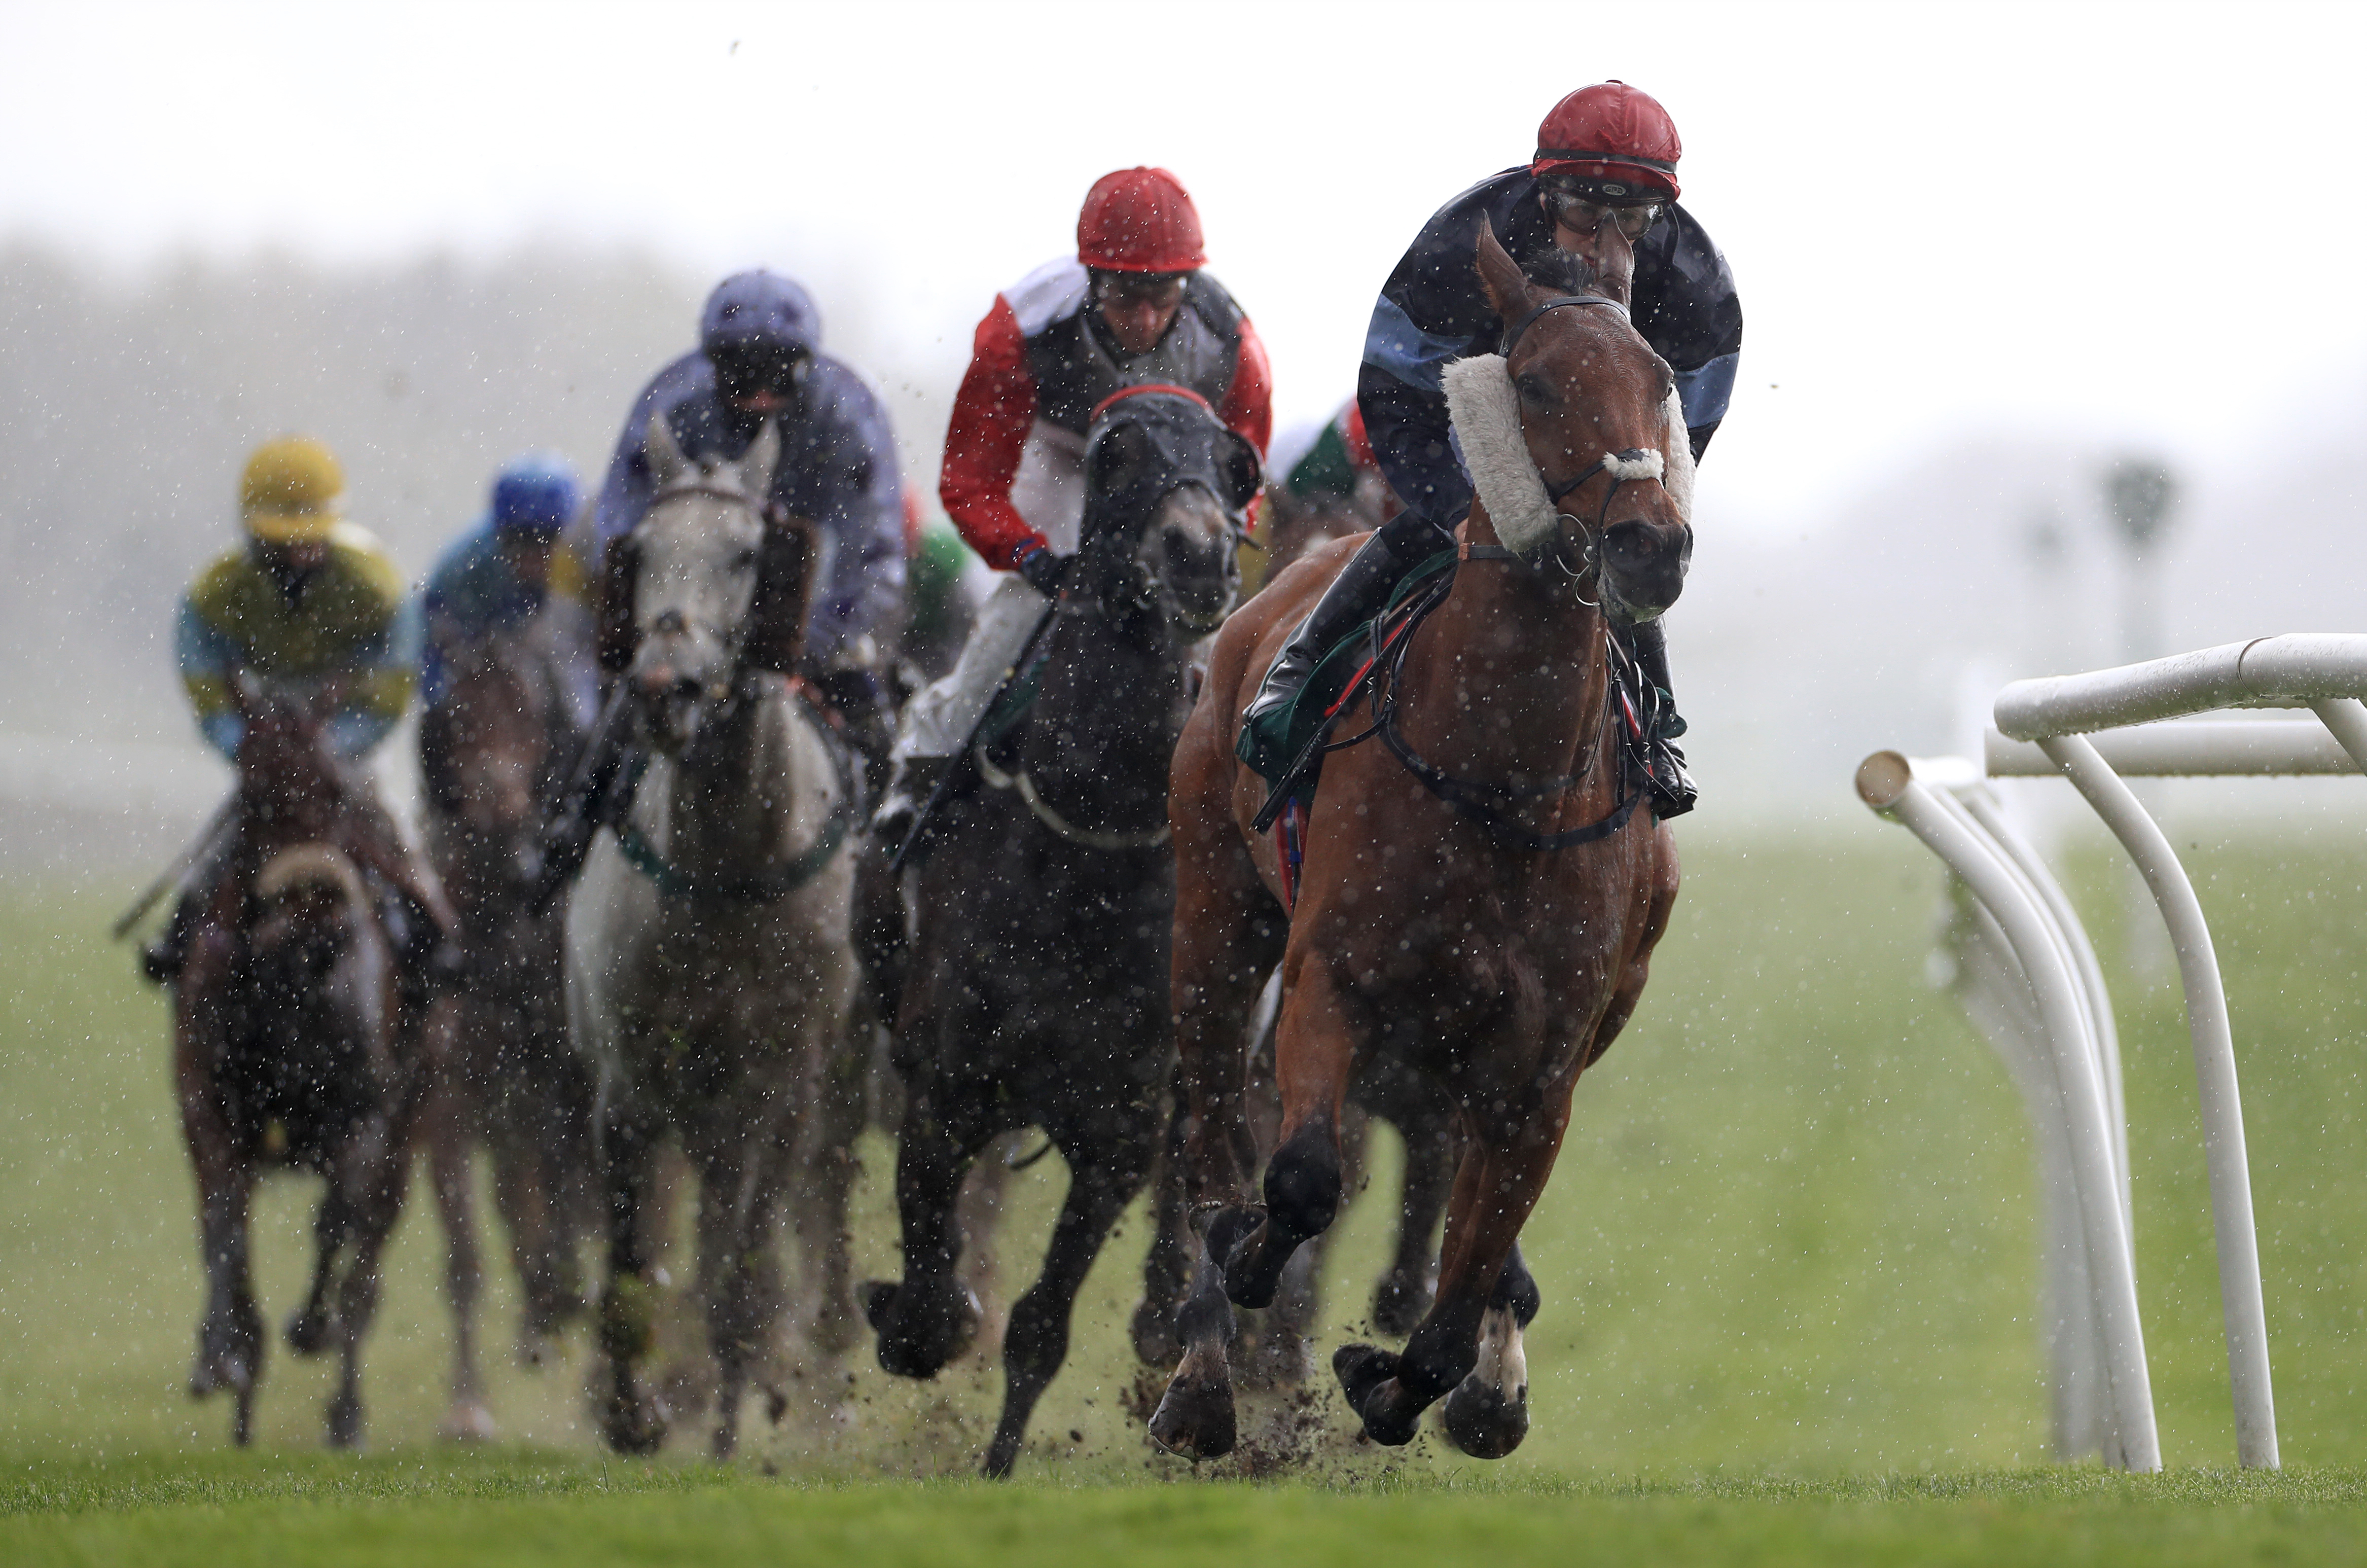 <p>Kings Creek and jockey Jamie Gormley (right) leads the field in the Racing Supporting Mental Health Awareness Week Handicap at Catterick Bridge Racecourse. Picture date: Monday May 10, 2021.</p>